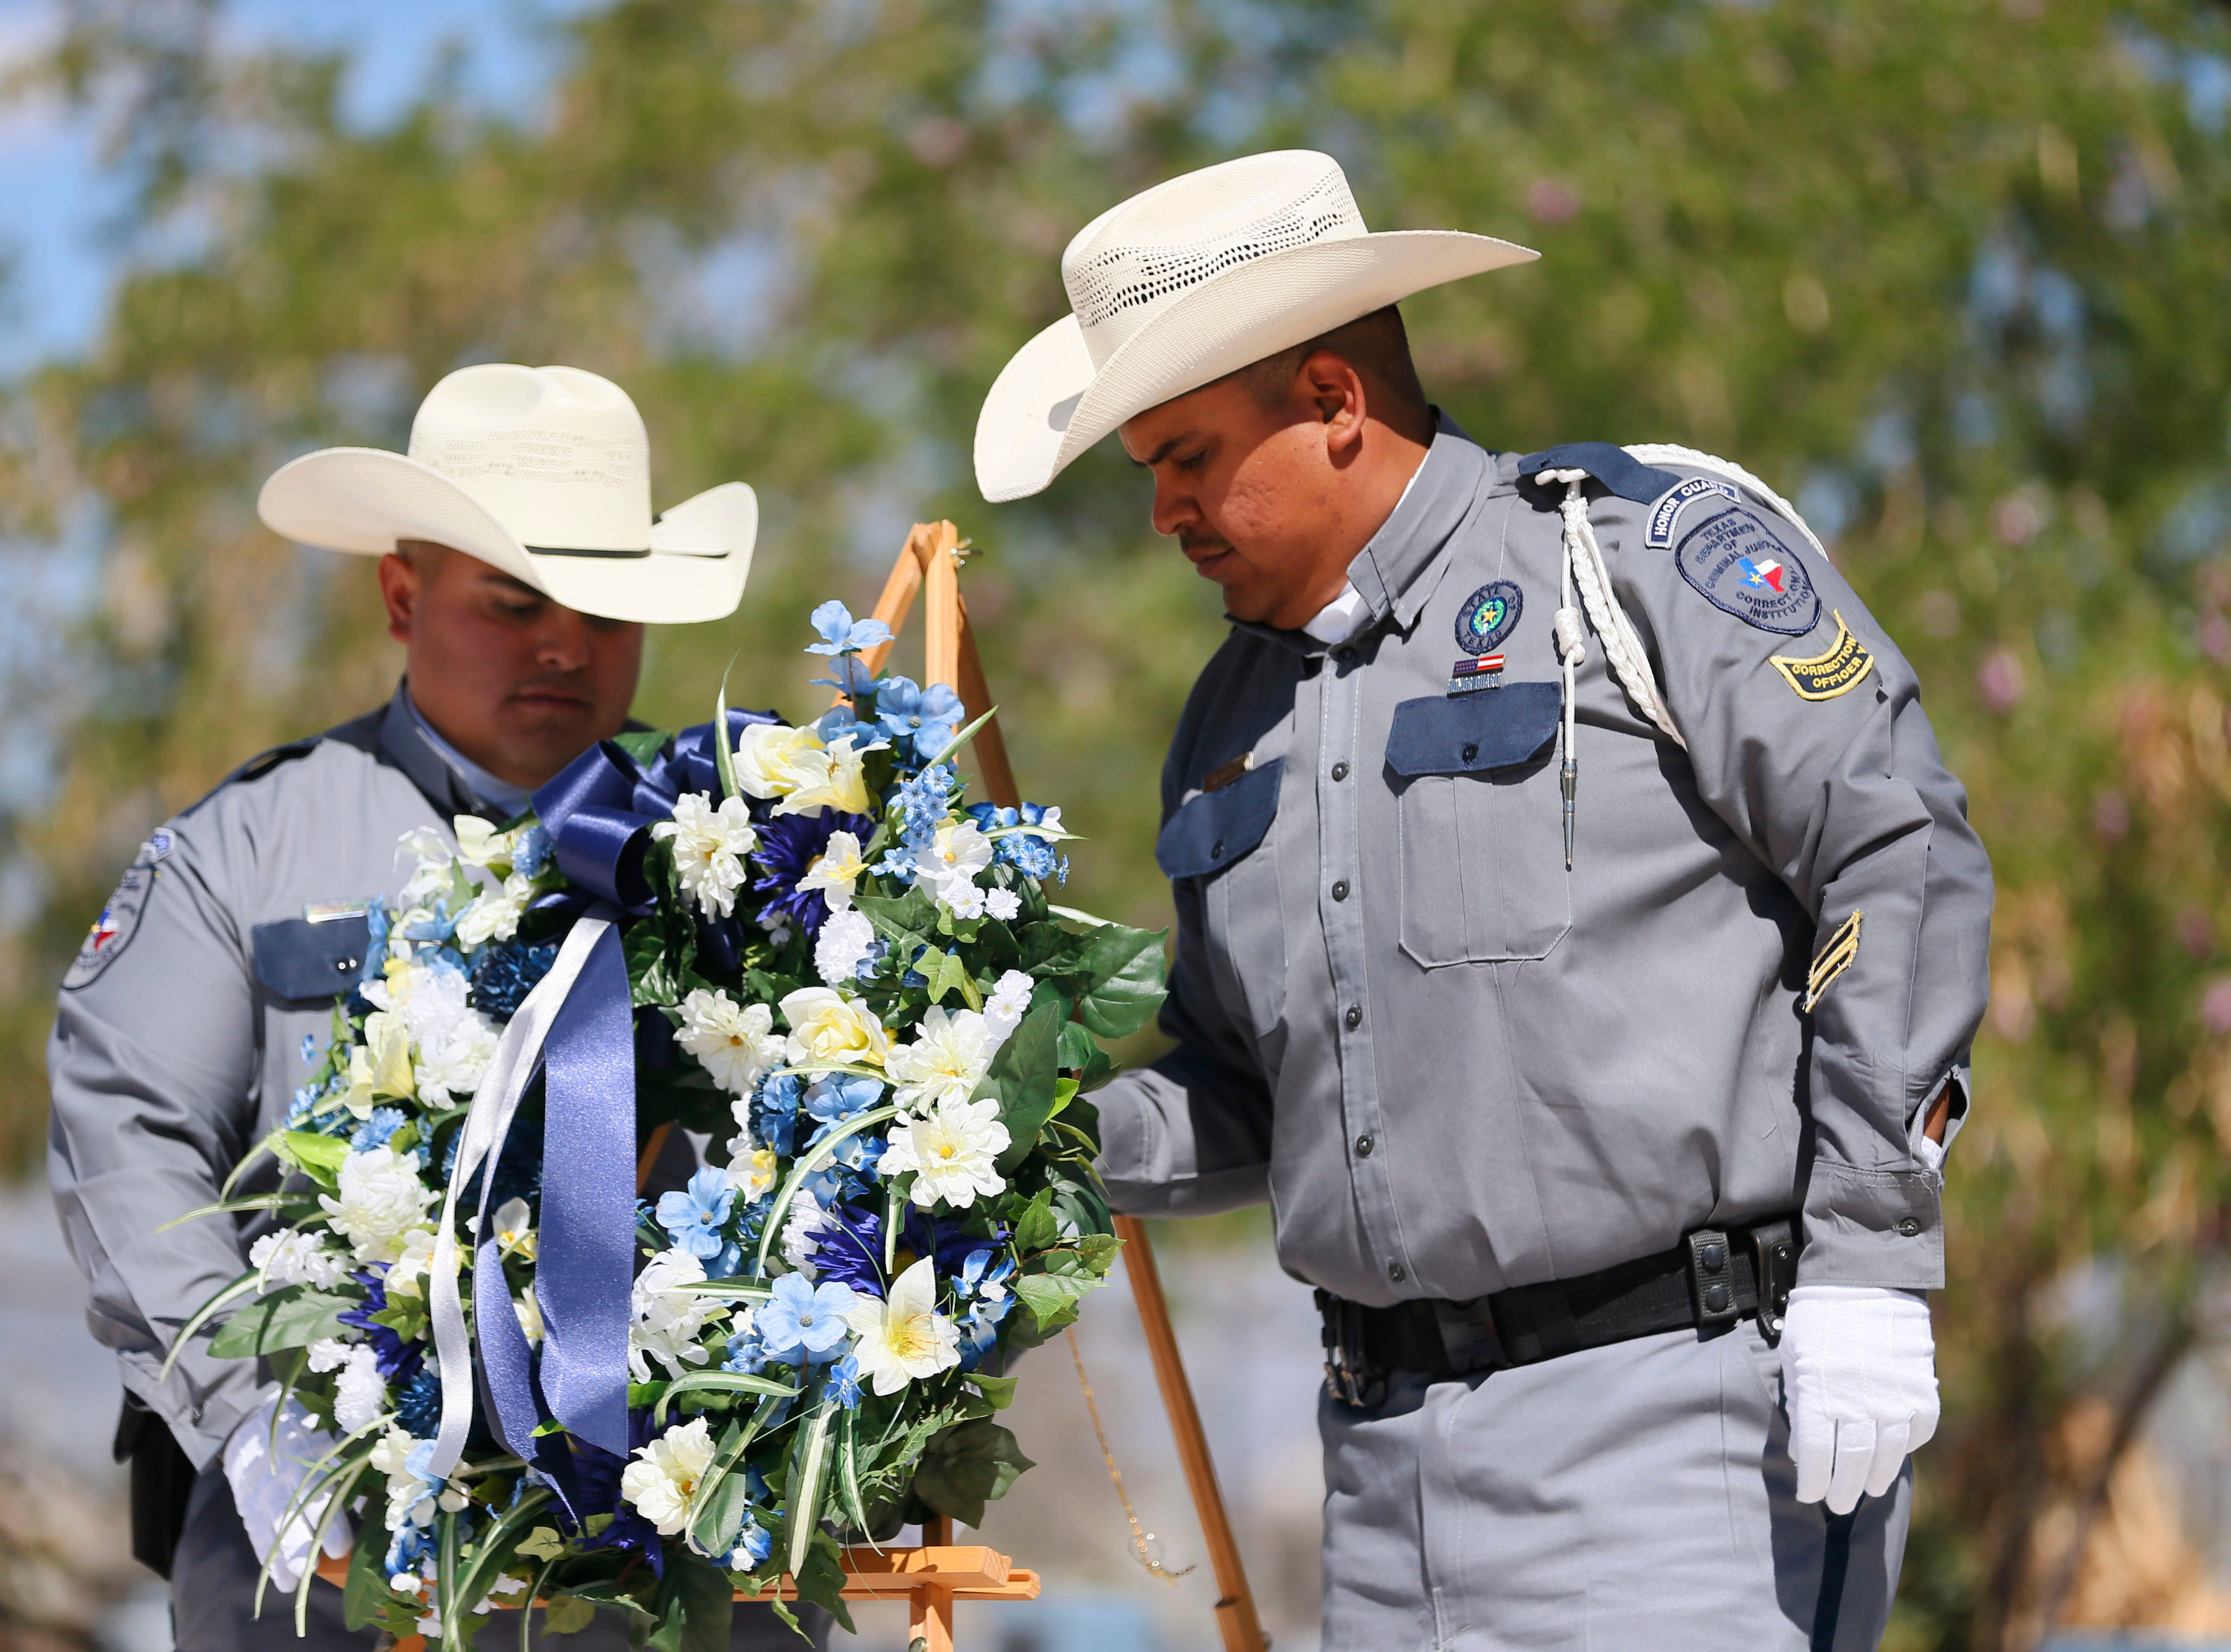 Officer Eric Amesquita, left, and Jesse Cisneros, right, lay the wreath during the gathering to honor the memory of fallen correctional officers Wednesday, May 8, at Rogelio Sanchez State Jail in El Paso.